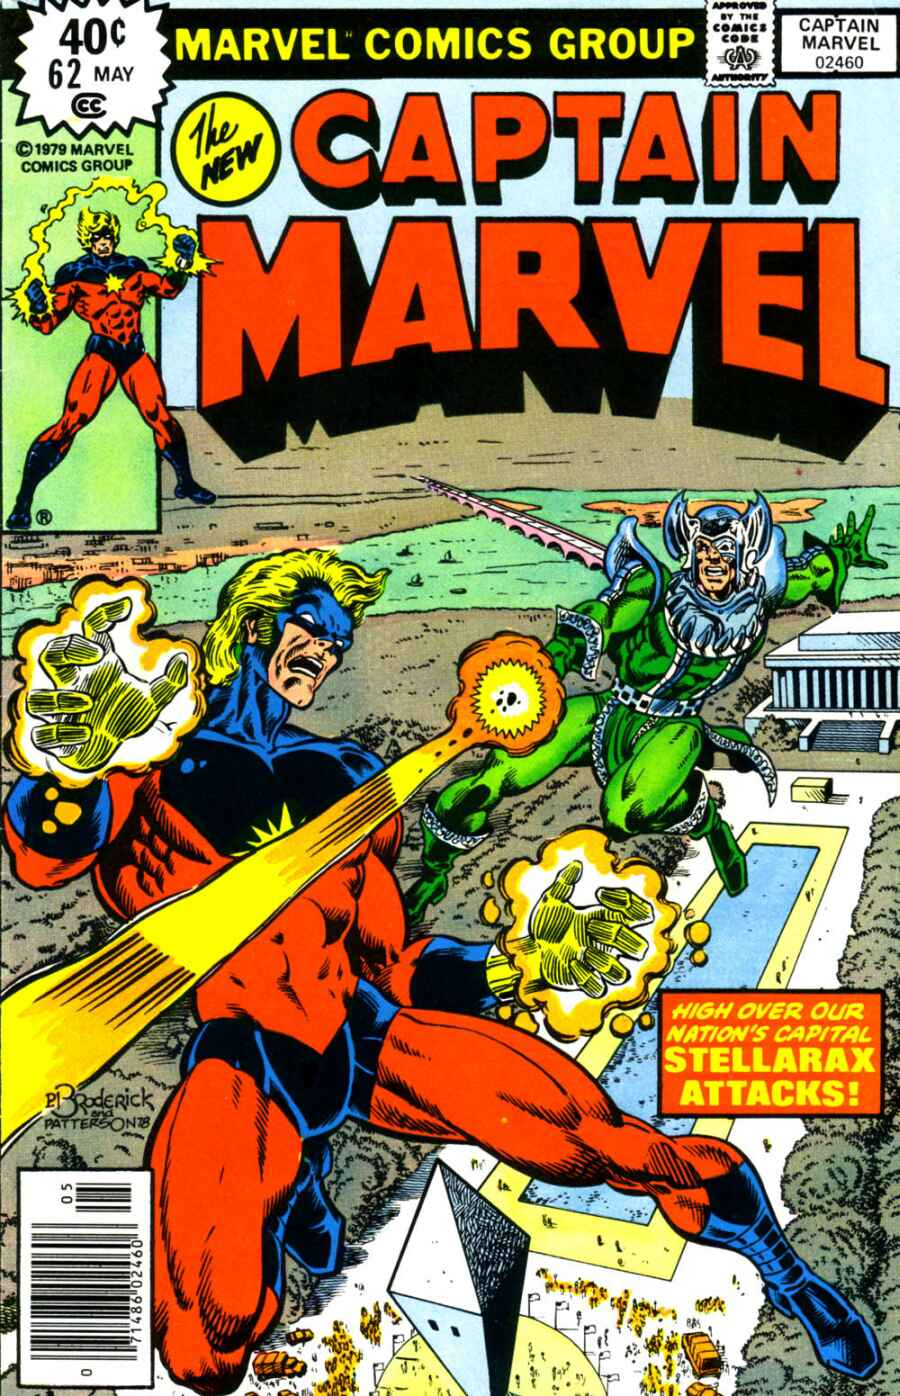 Captain Marvel (1968) issue 62 - Page 1